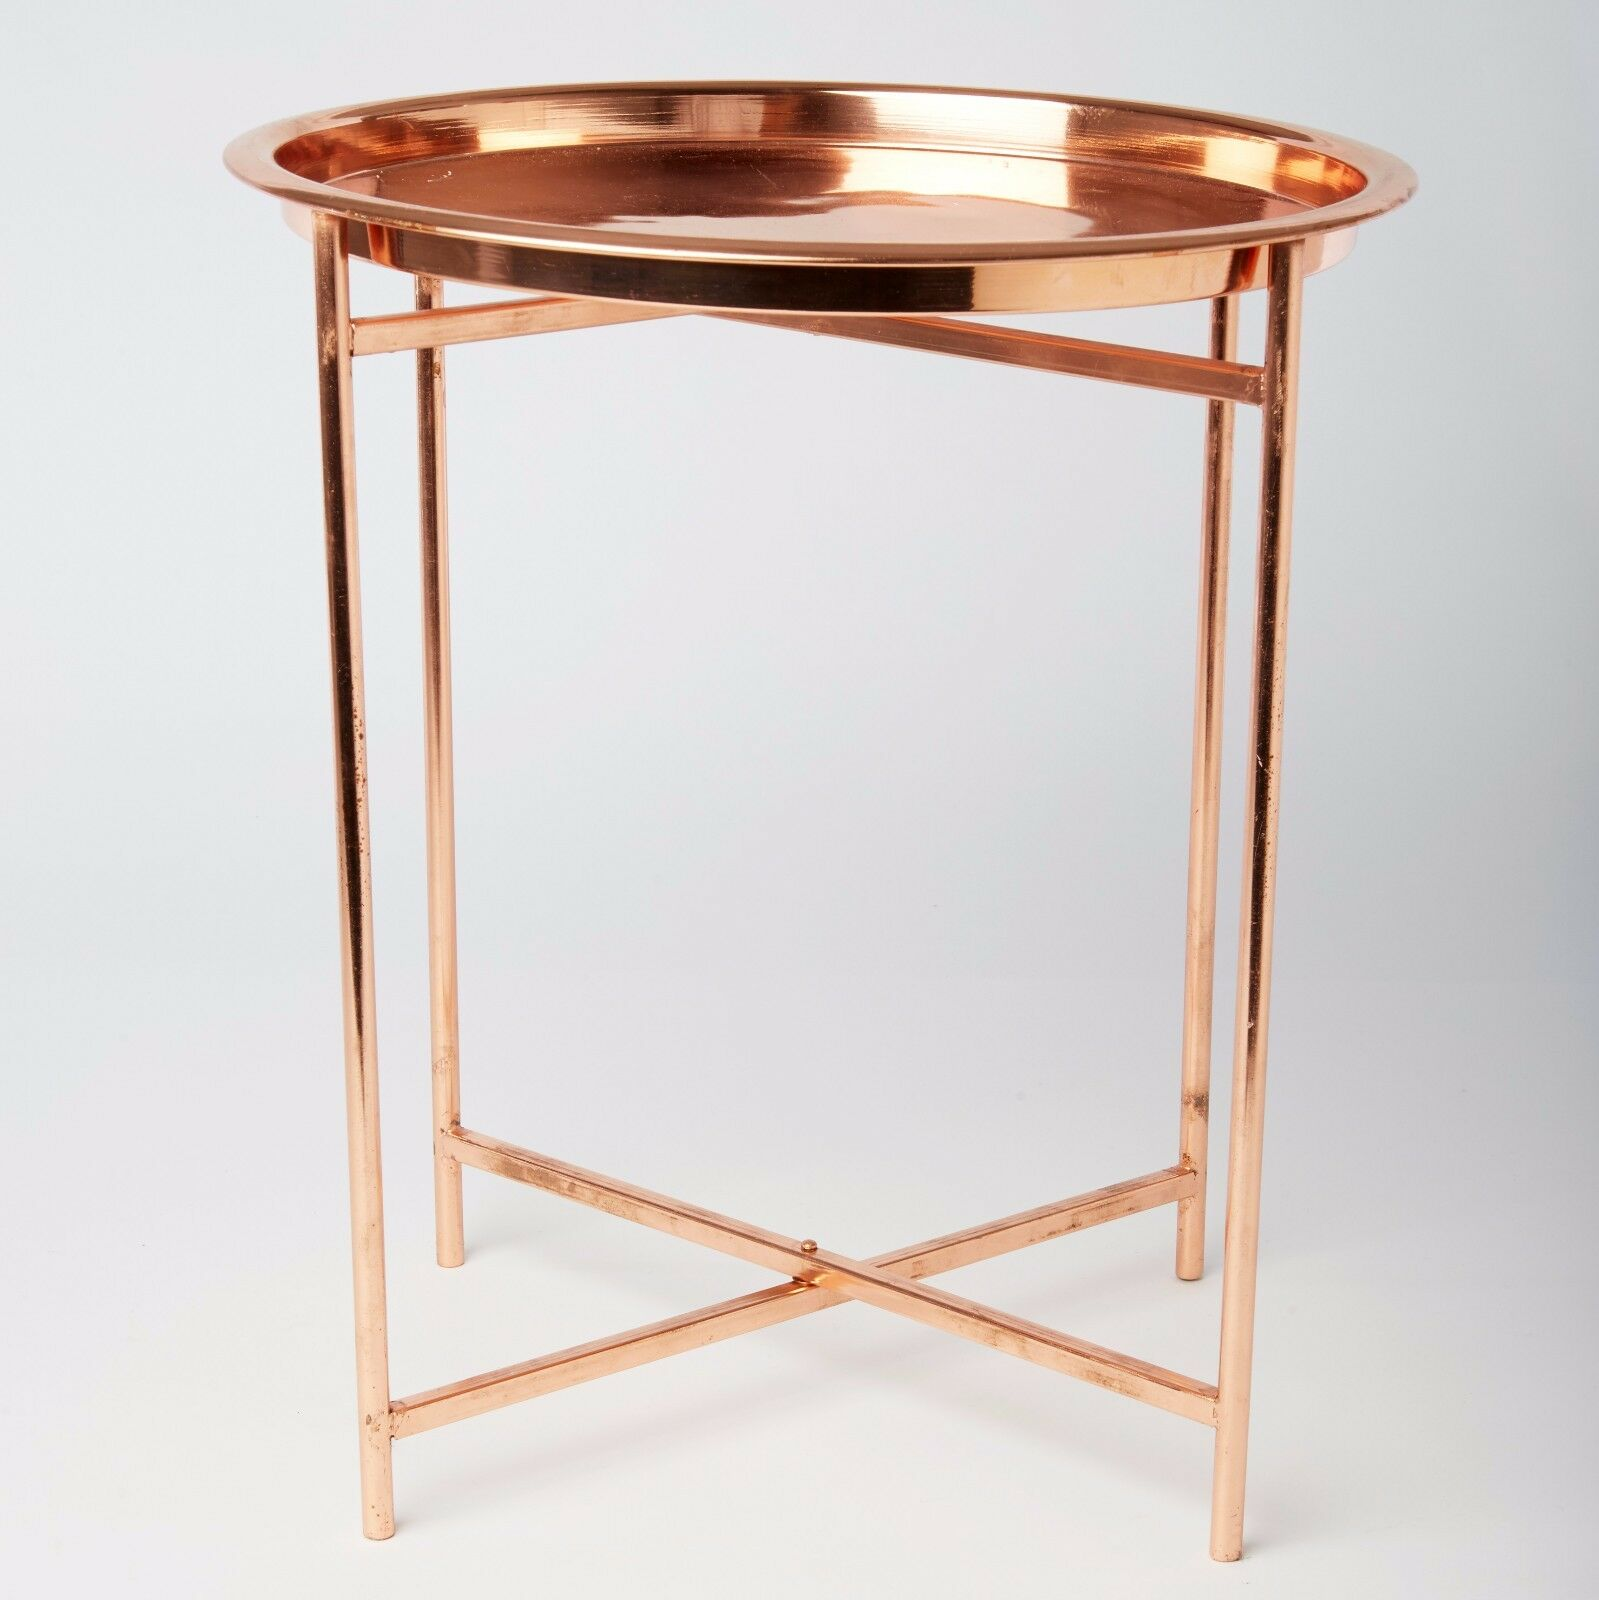 Coffee Table Copper Tray: Small Folding Round Copper Coffee Side Table Contemporary